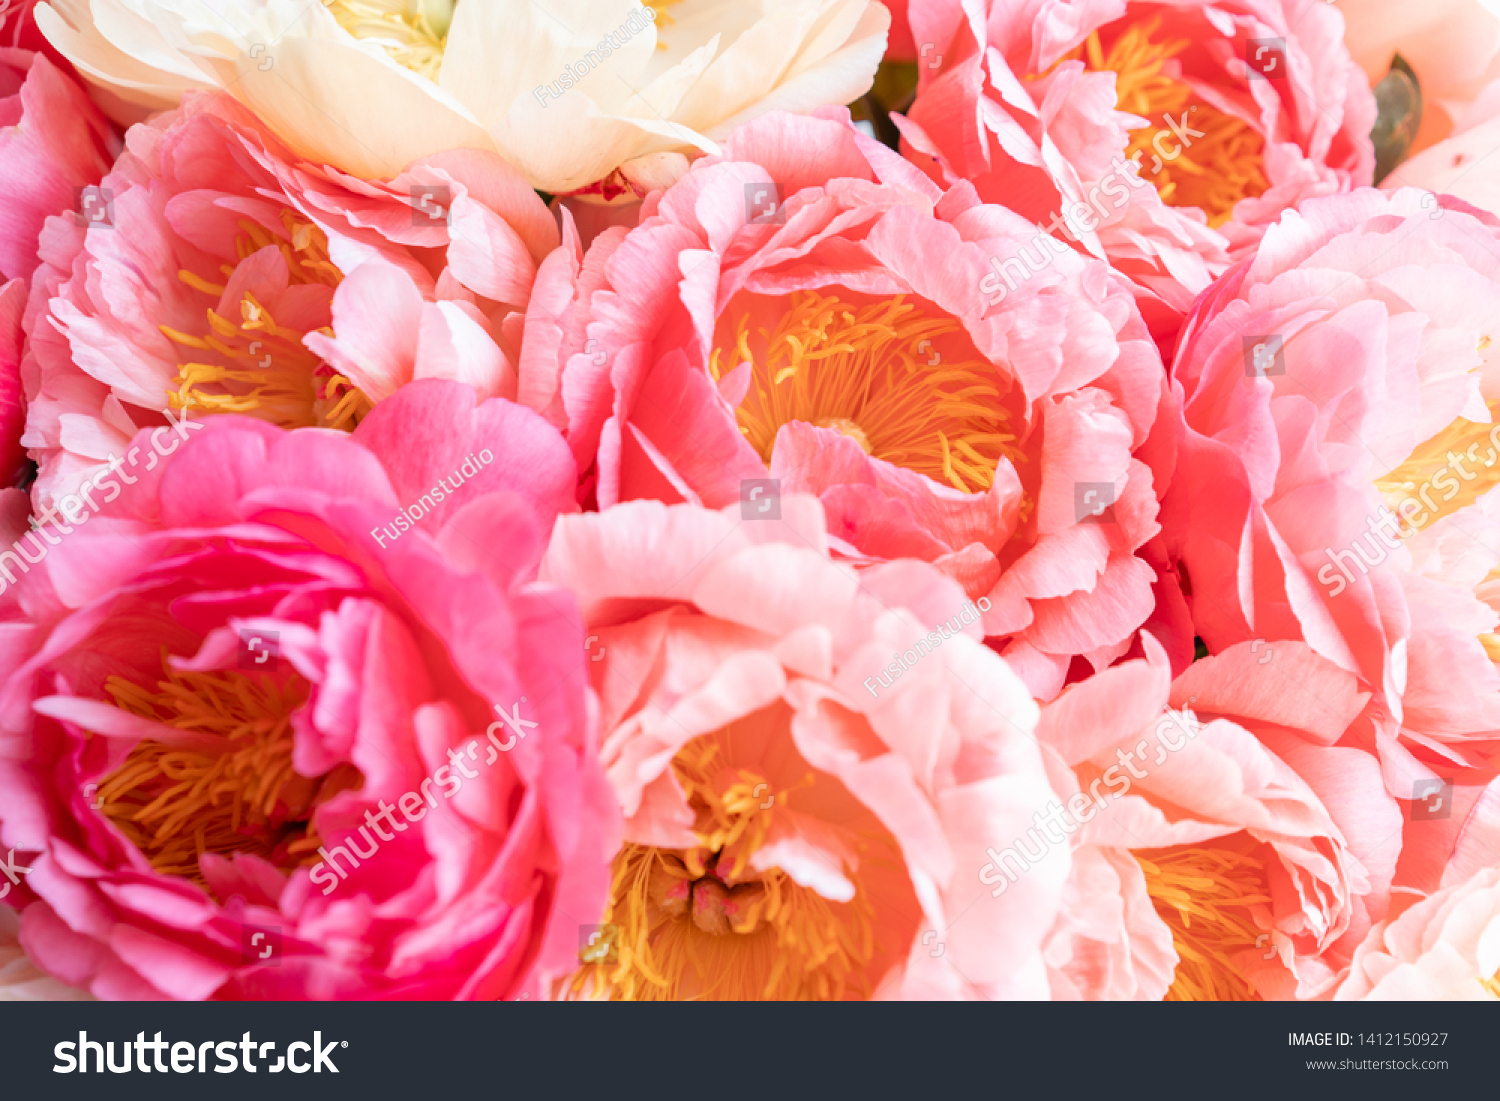 Floral Carpet Wallpaper Background Coral Peonies Stock Photo Edit